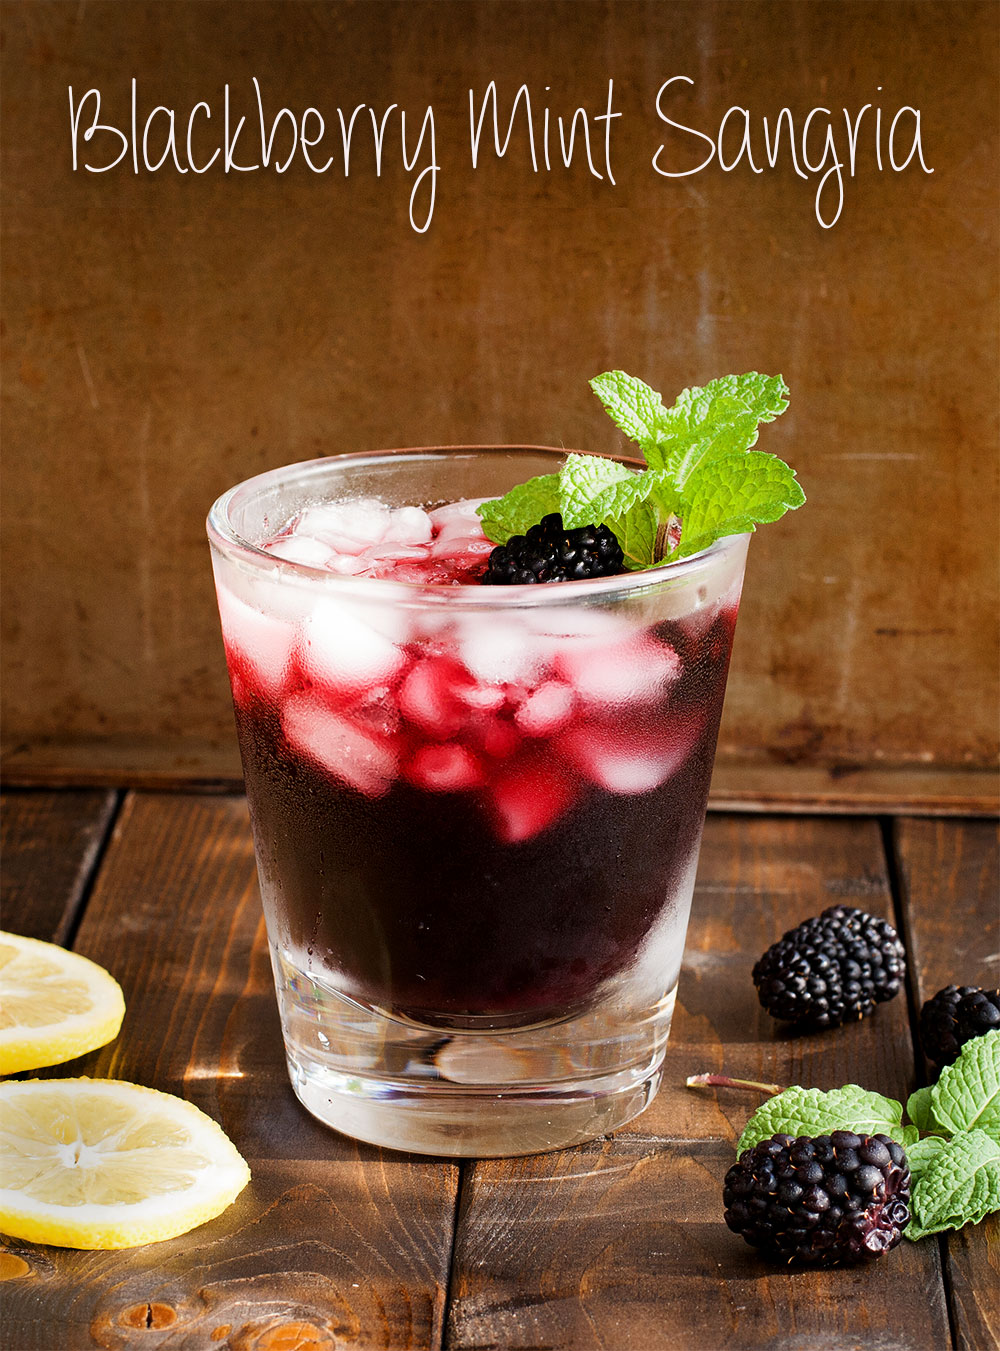 Blackberry Mint Sangria